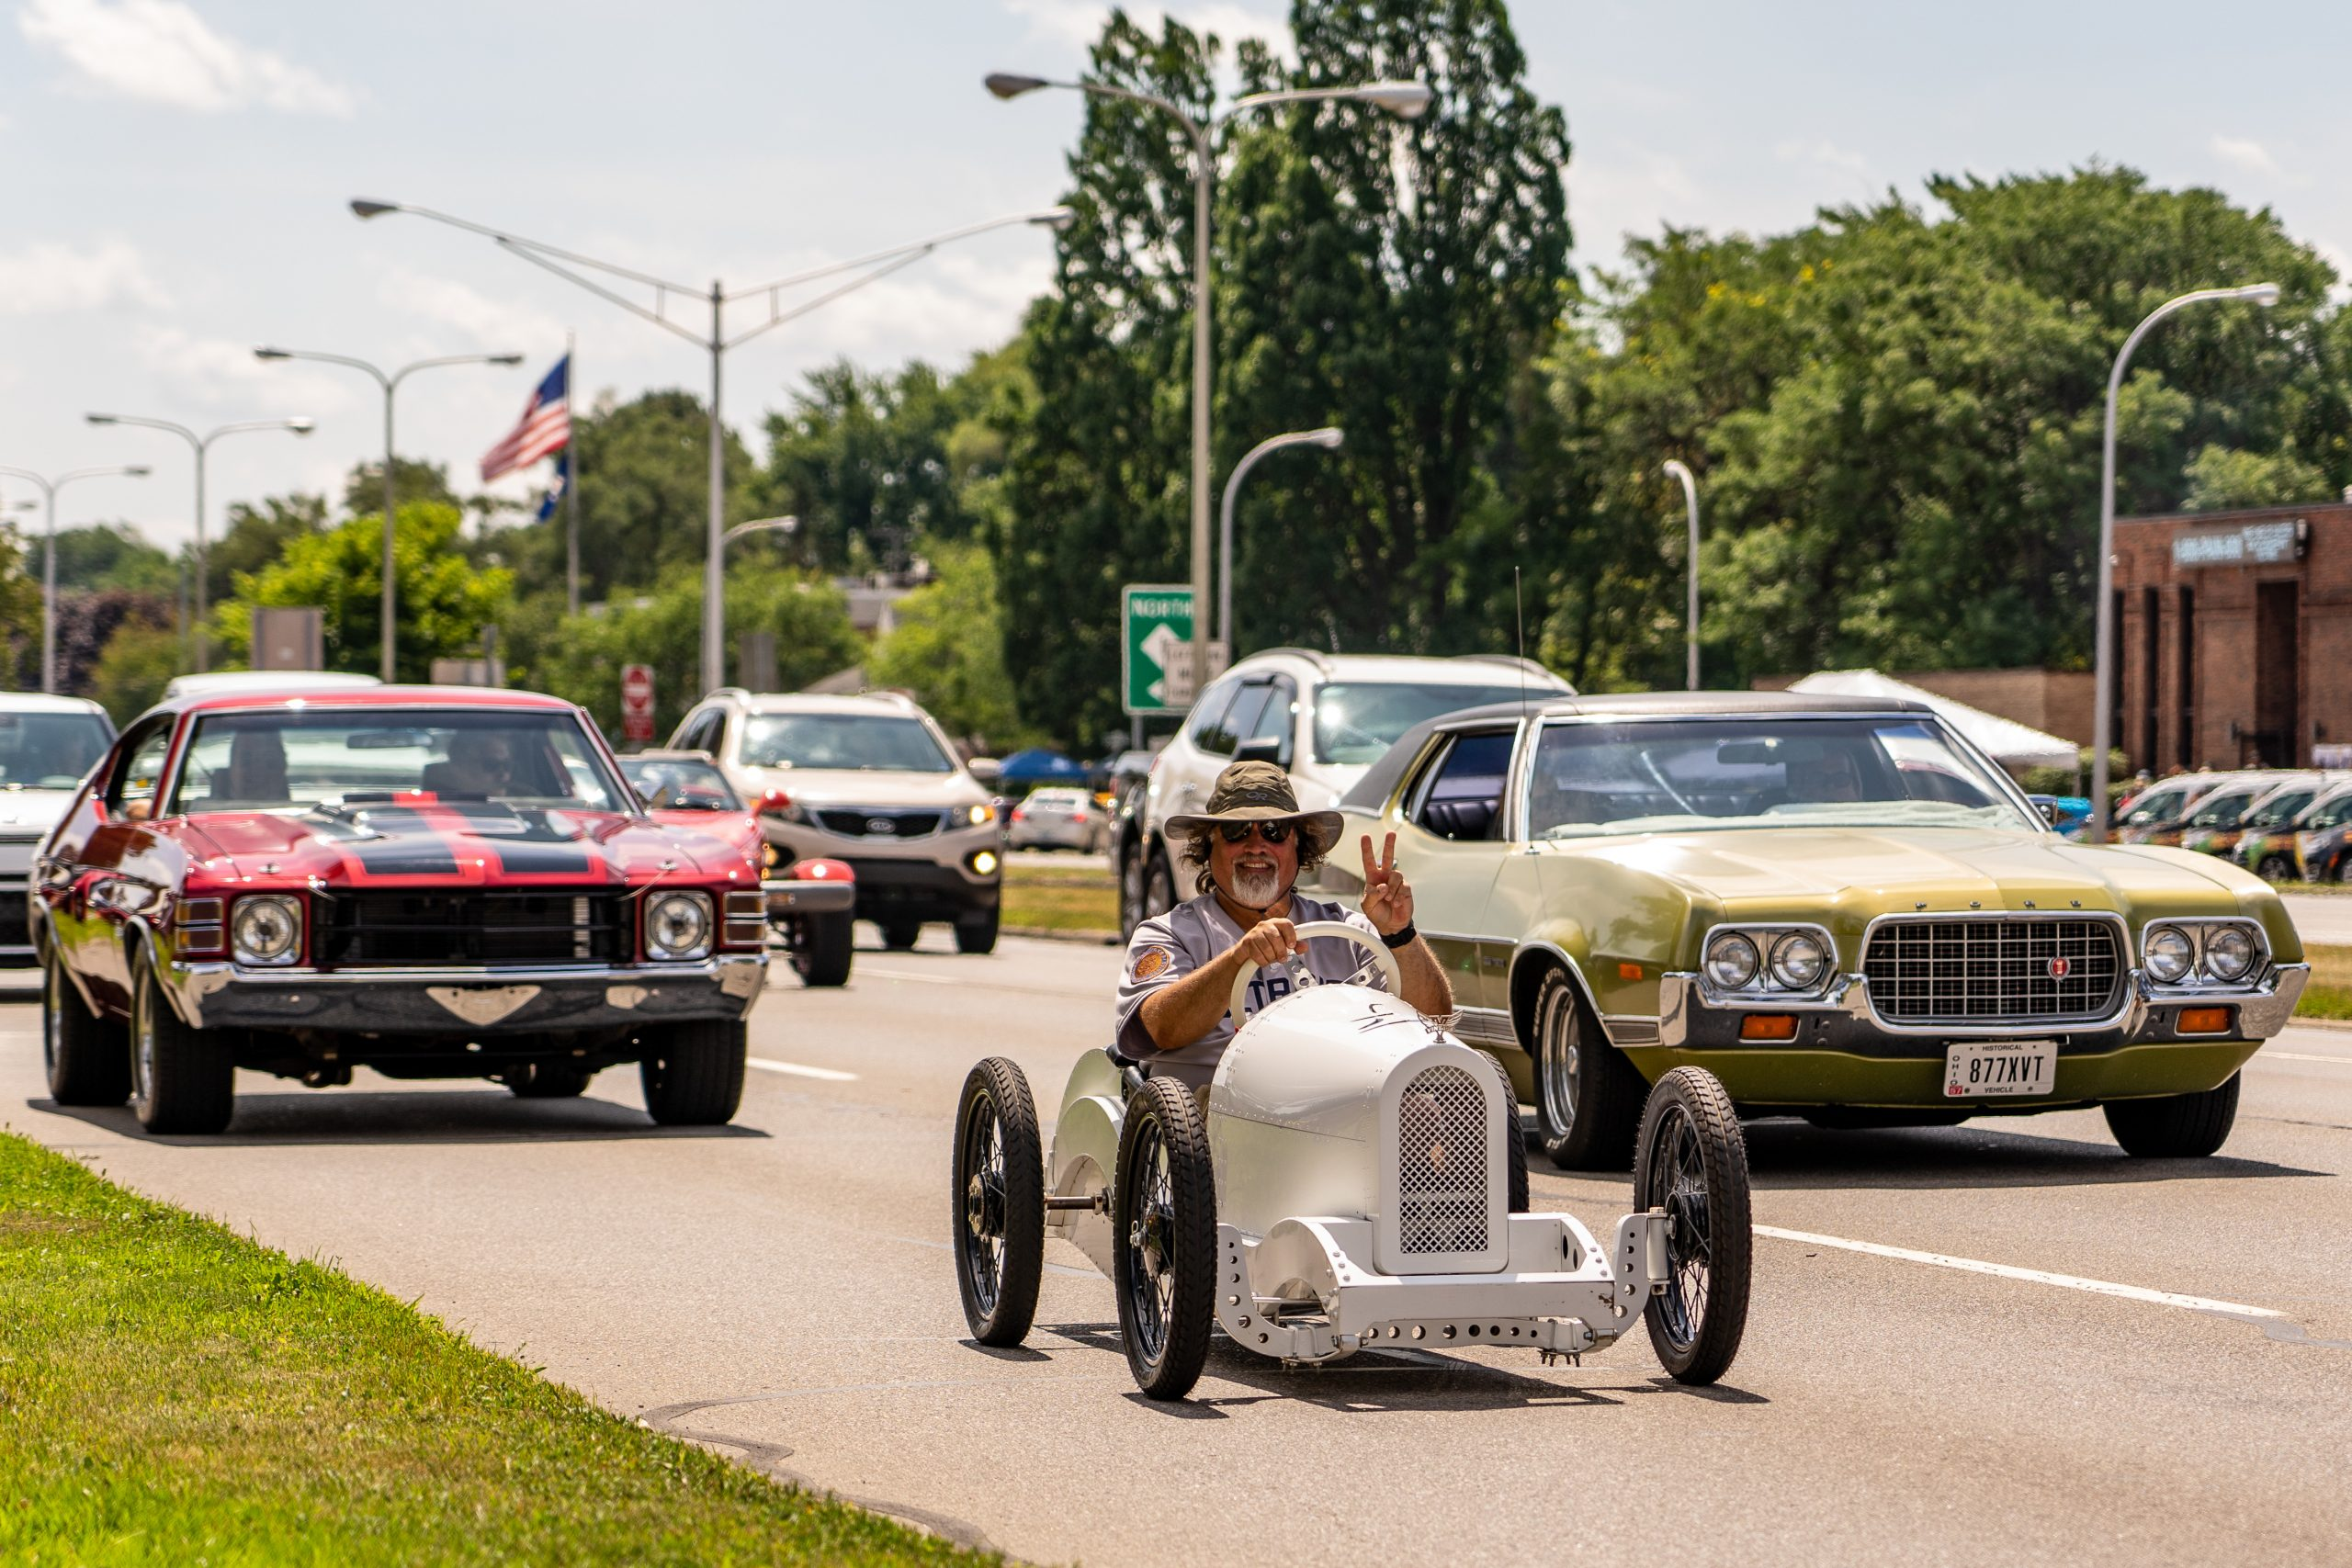 2019 Woodward Dream Cruise Cars Parade